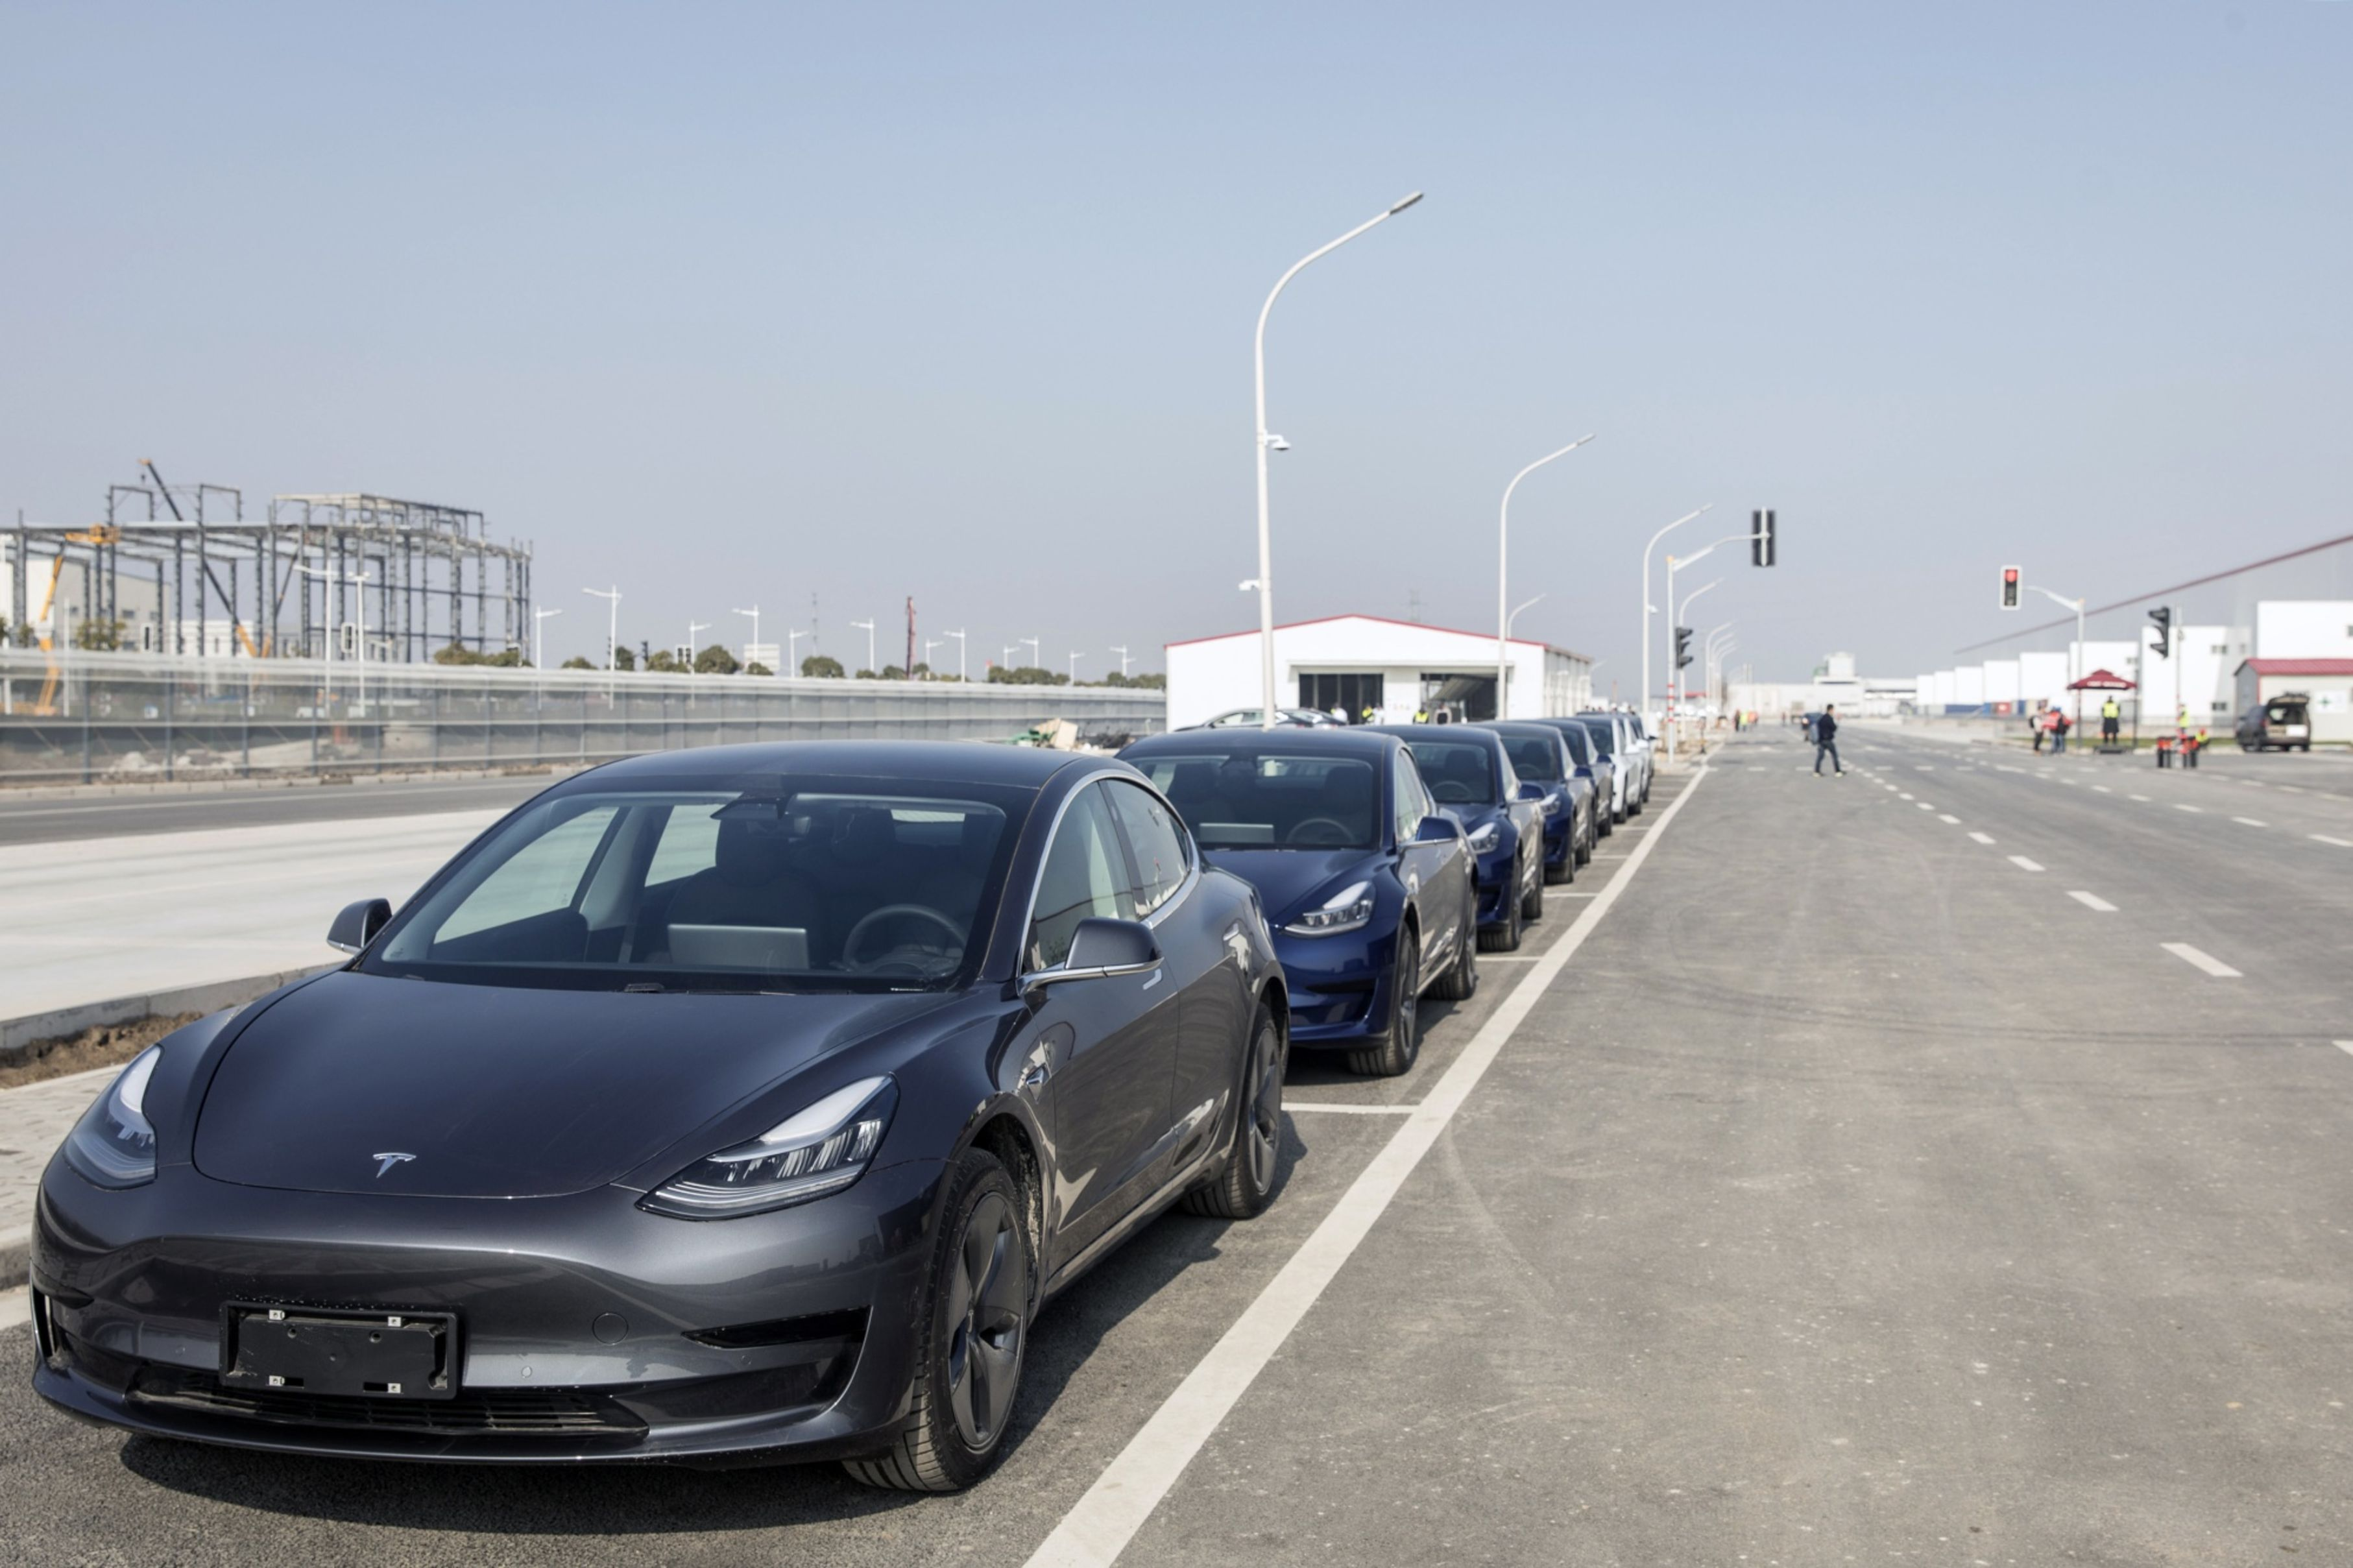 Tesla Inc. Model 3 vehicles sit parked at the company's Gigafactory in Shanghai on Dec. 30, 2019. Photo: Bloomberg